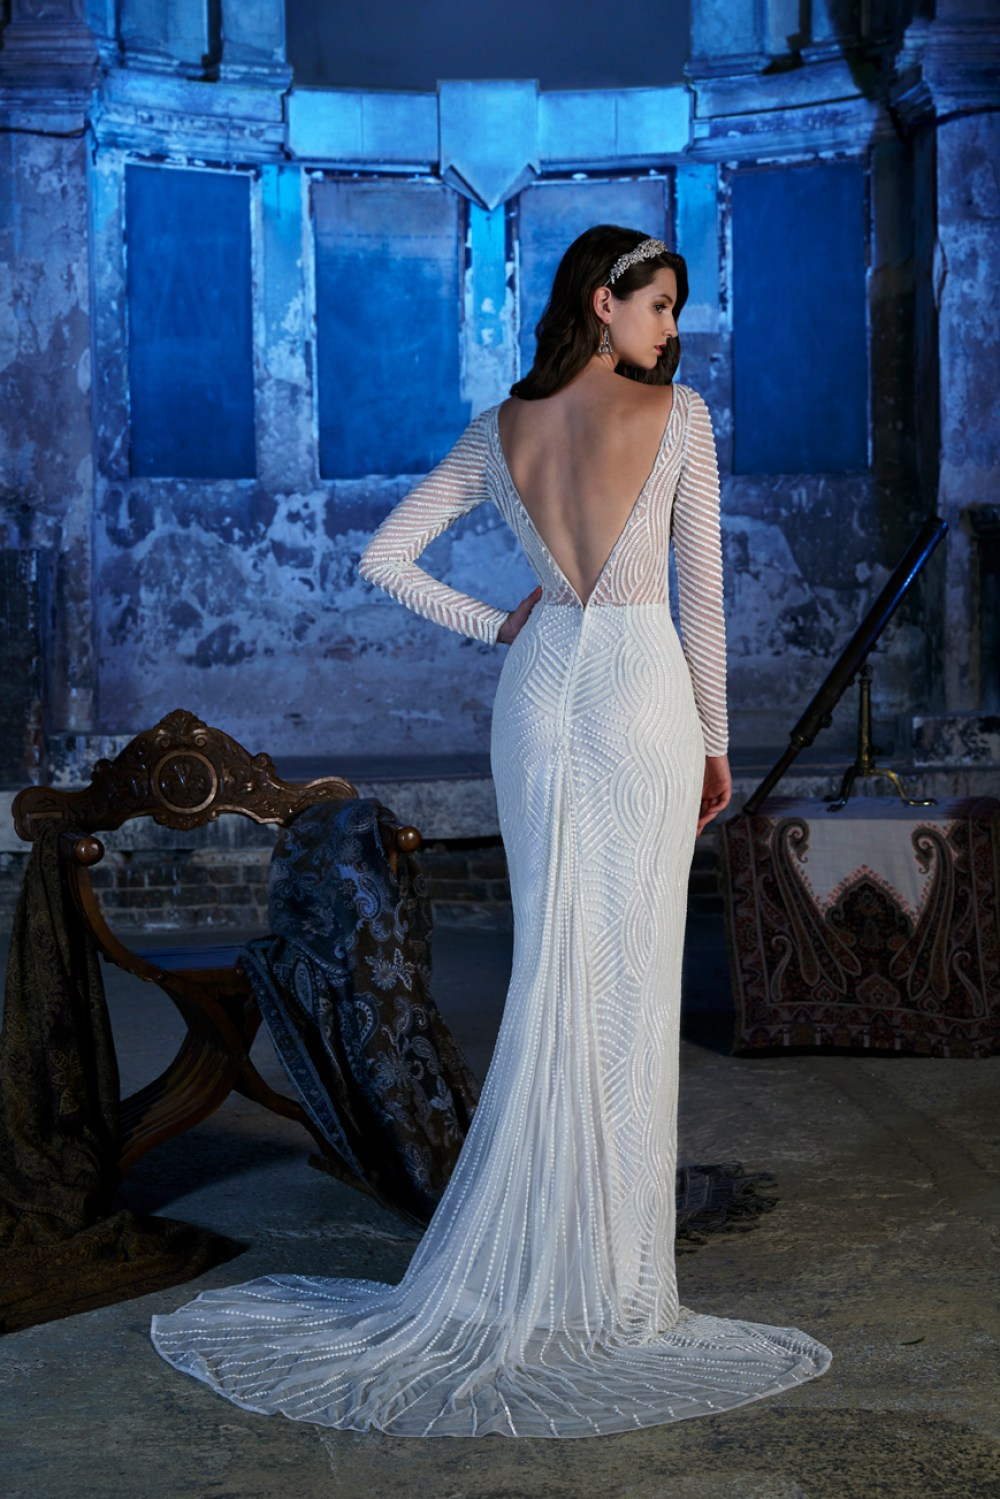 luna-dress-back, Vintage inspired Wedding Dresses , 2017 Stardust Collection , Eliza Jane Howell, Images - Chris Dawes Photography